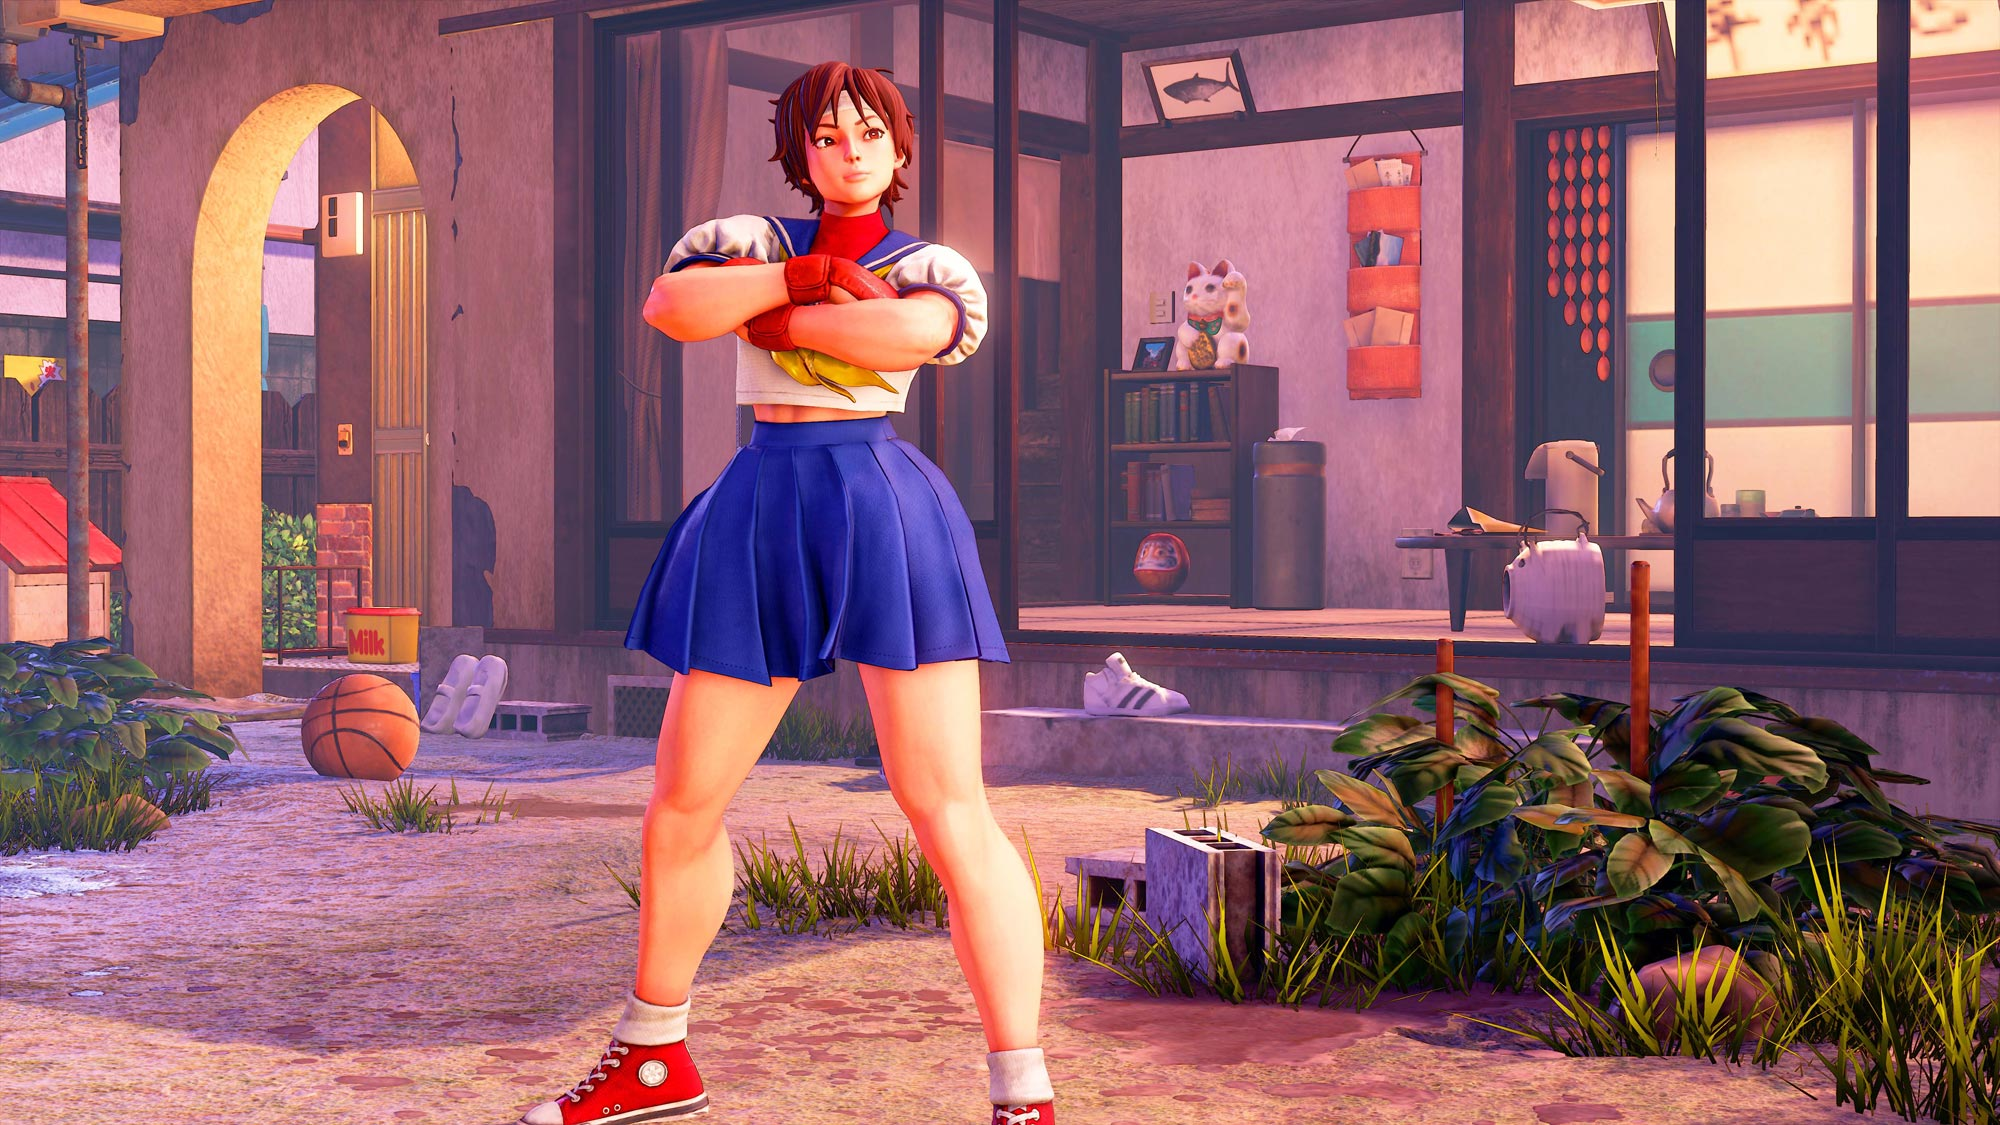 Street Fighter 5: Arcade Edition launch images 13 out of 15 image gallery